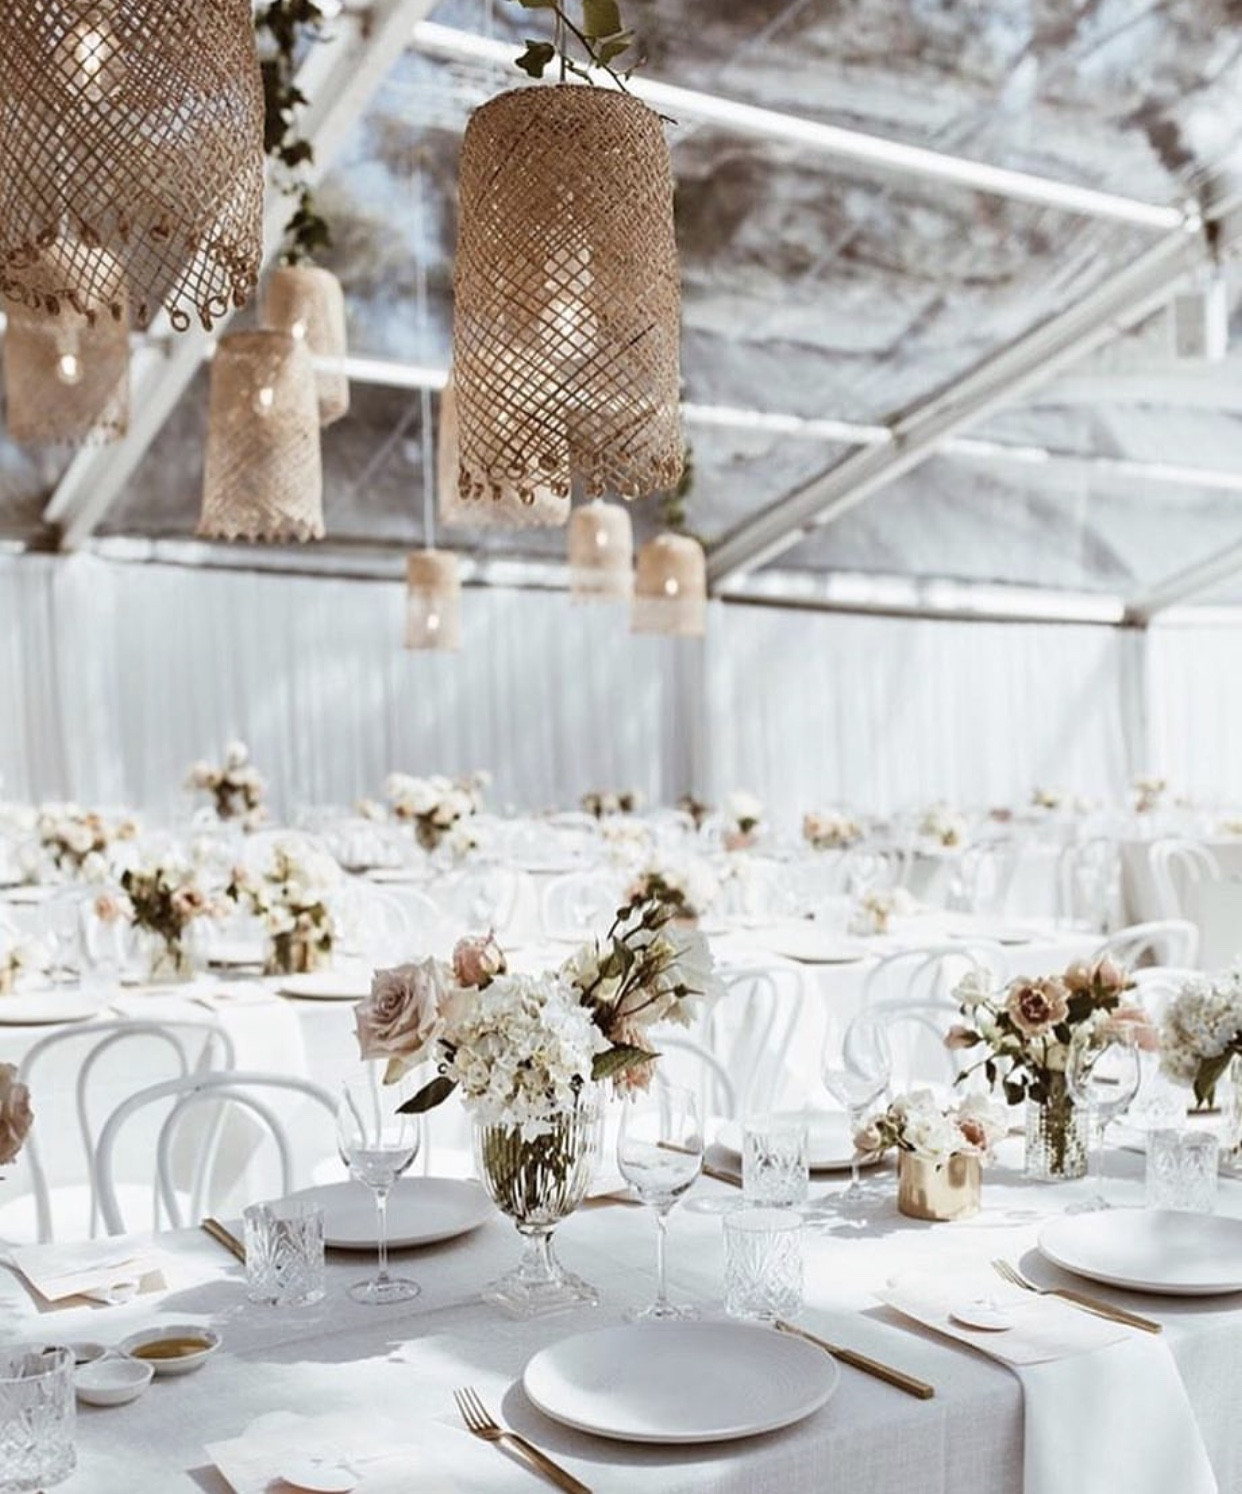 2018 Wedding Trends... - WeddingPlanner.co.uk